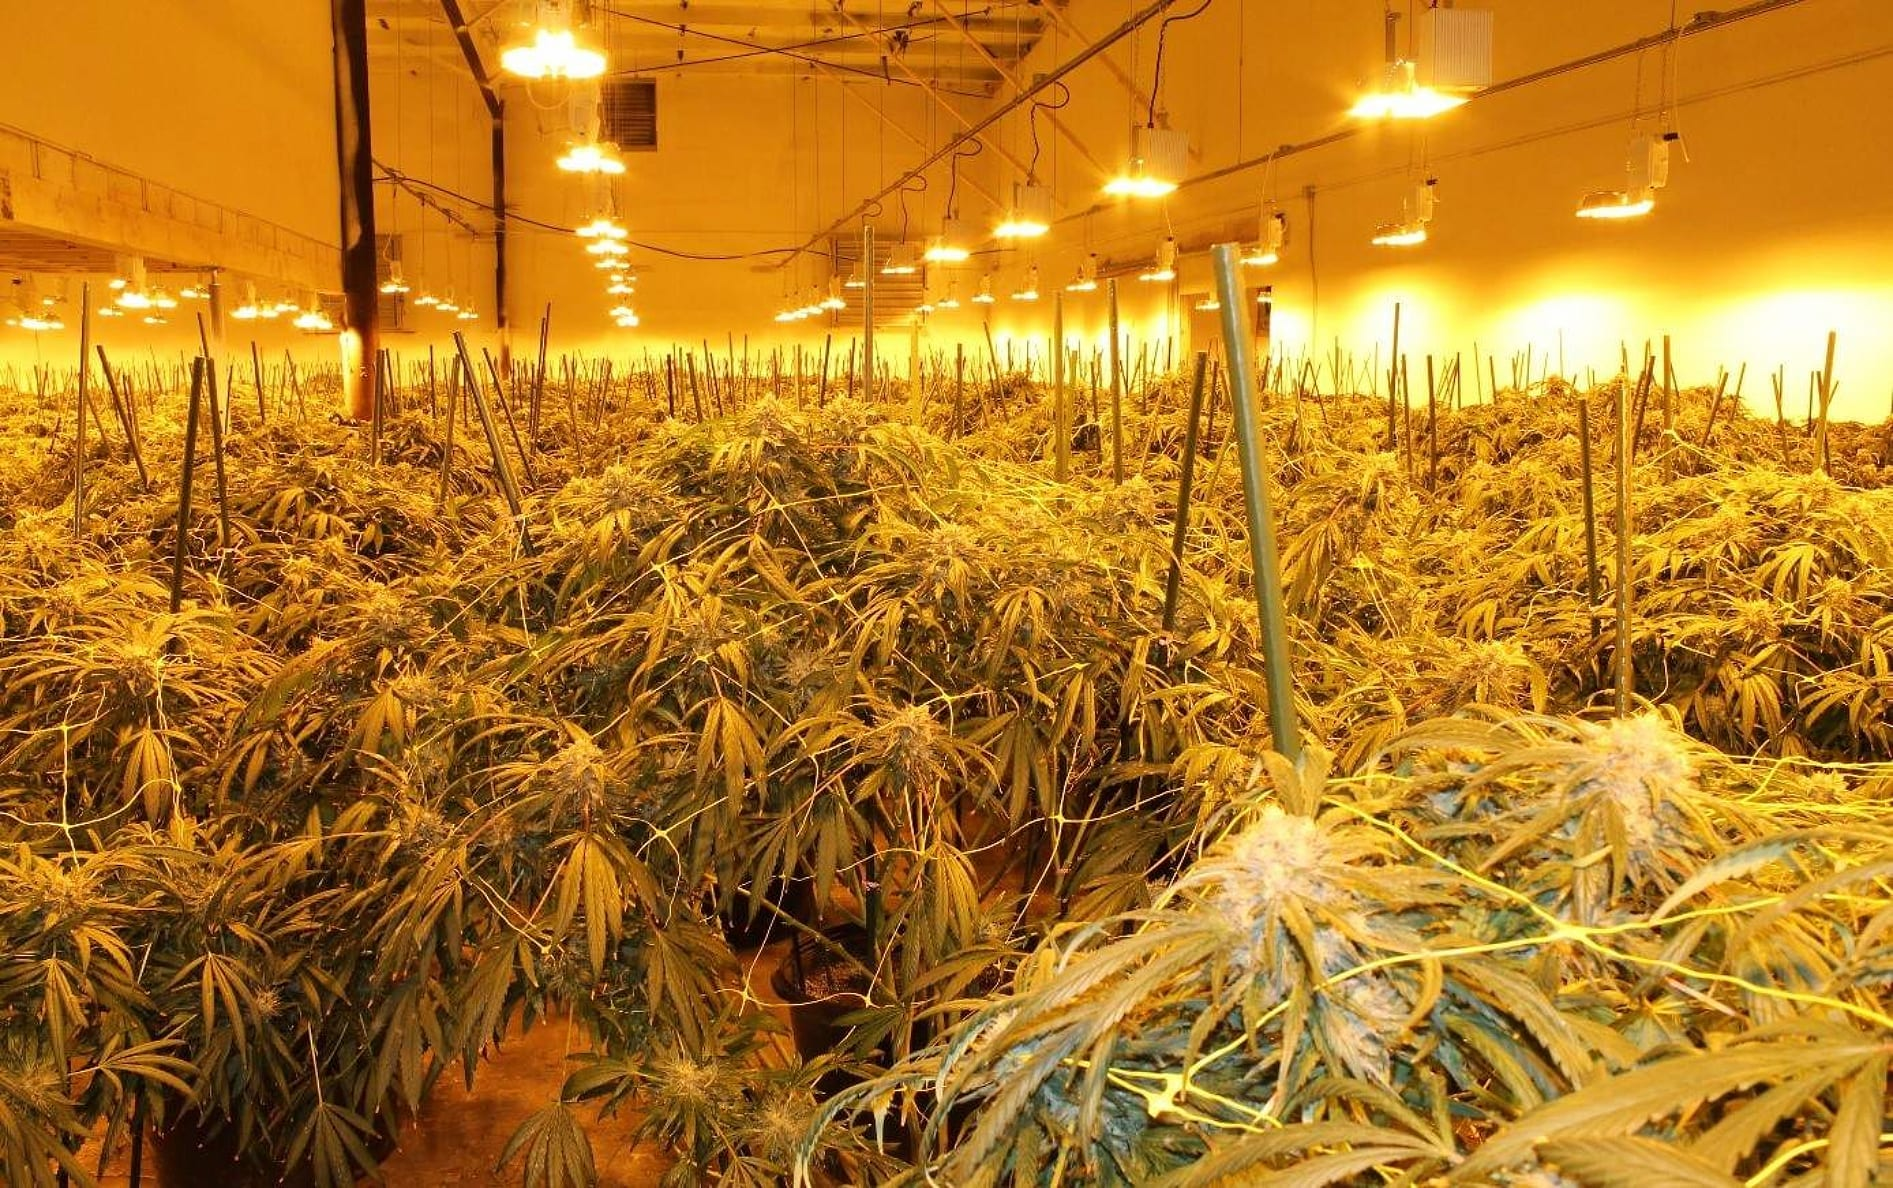 Salmon Arm RCMP seize 1,600 cannabis plants from unlicensed grow